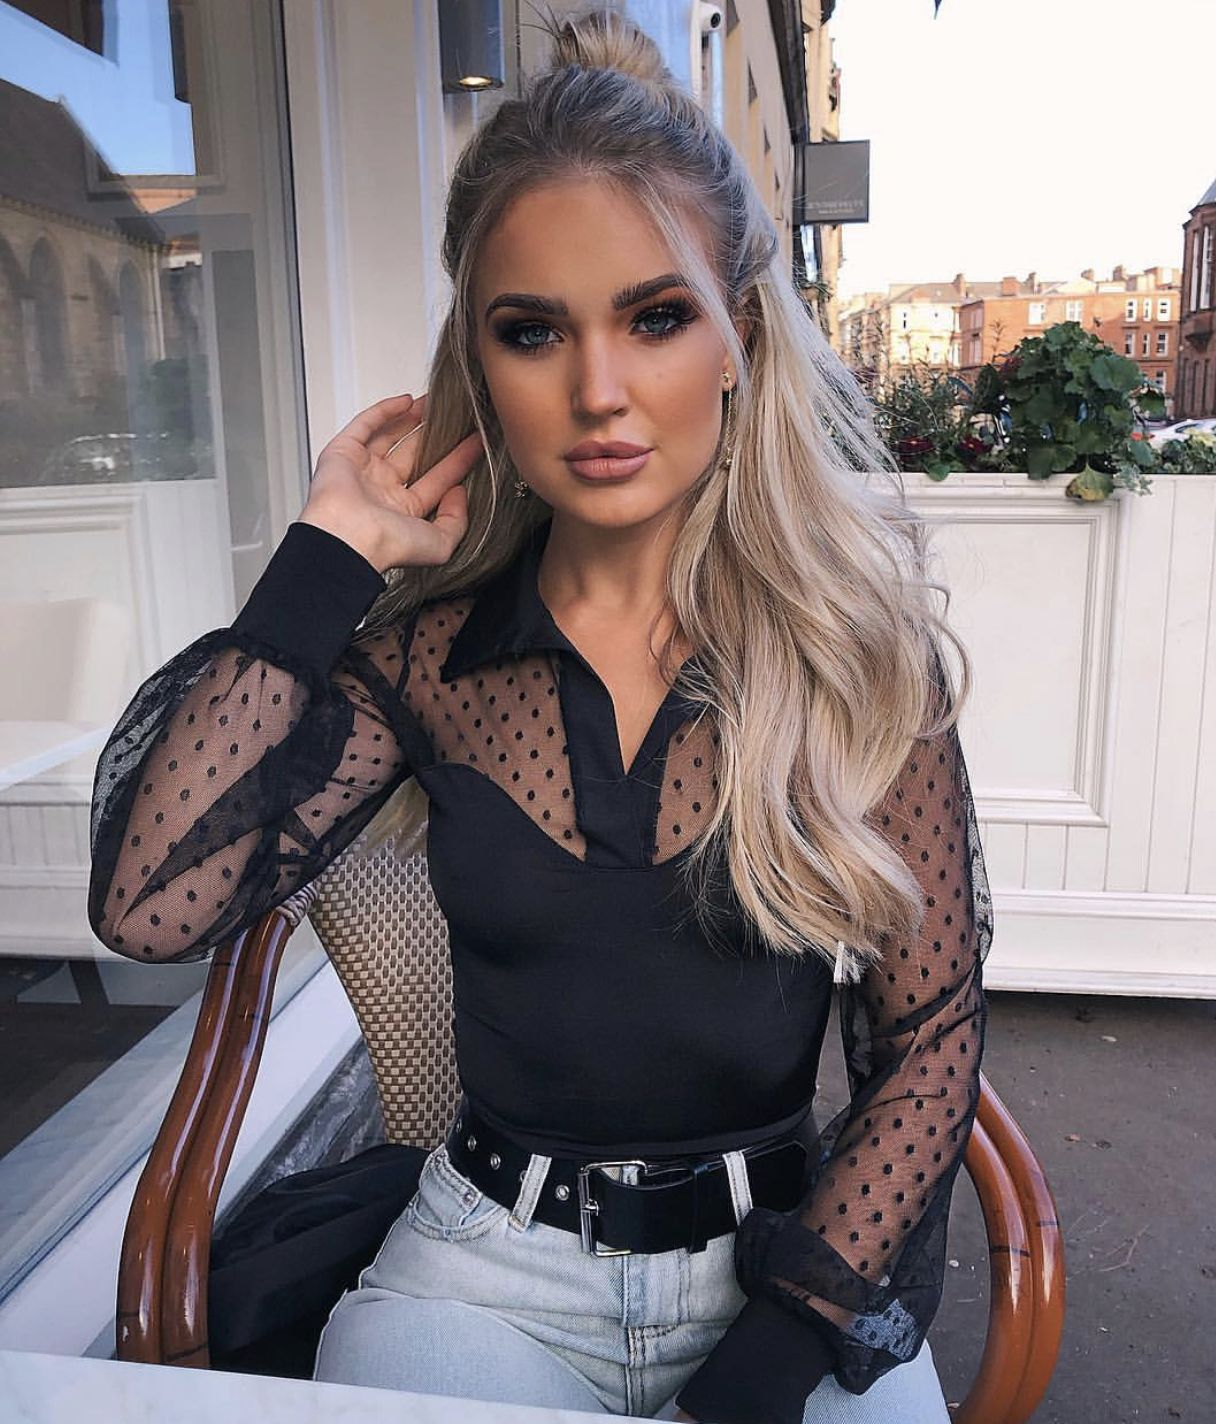 Women Mesh Sheer Lace Blouse Ladies Summer Long Sleeve Dot Sexy V-neck Vest Tops 2019 New Fashion Elegant And Graceful Women's Clothing